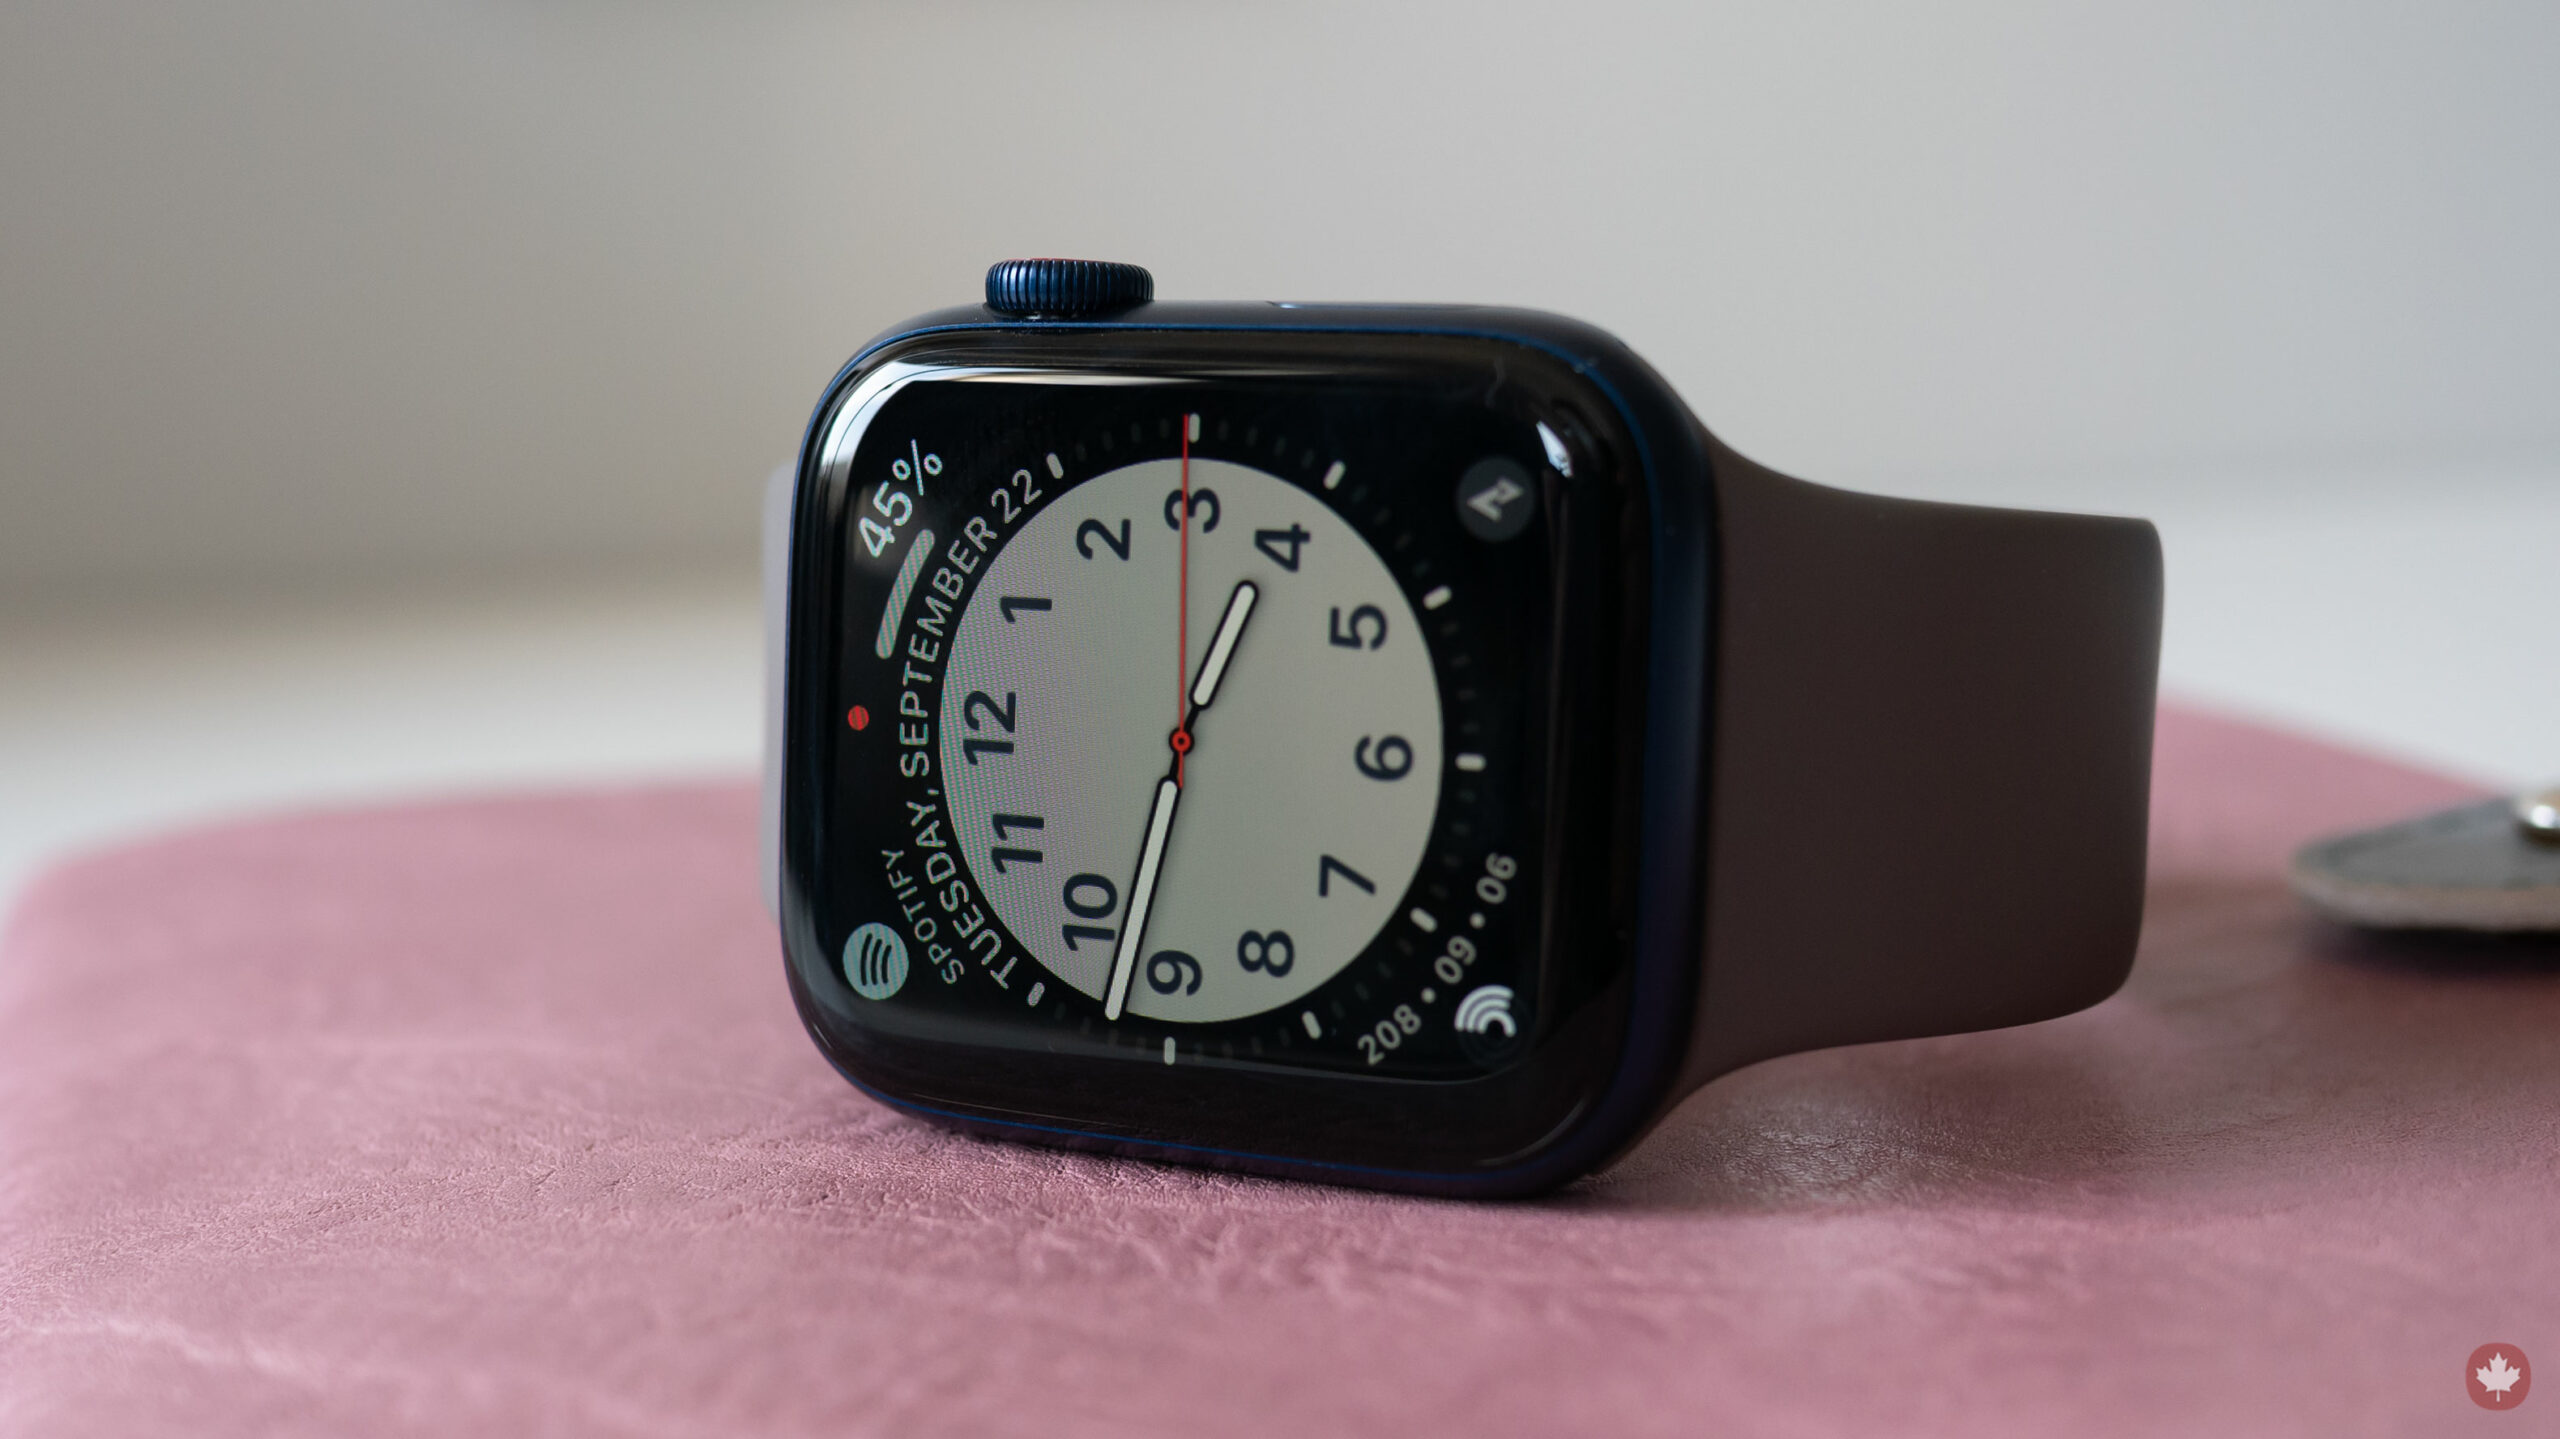 Apple Watch Series 6 on its side